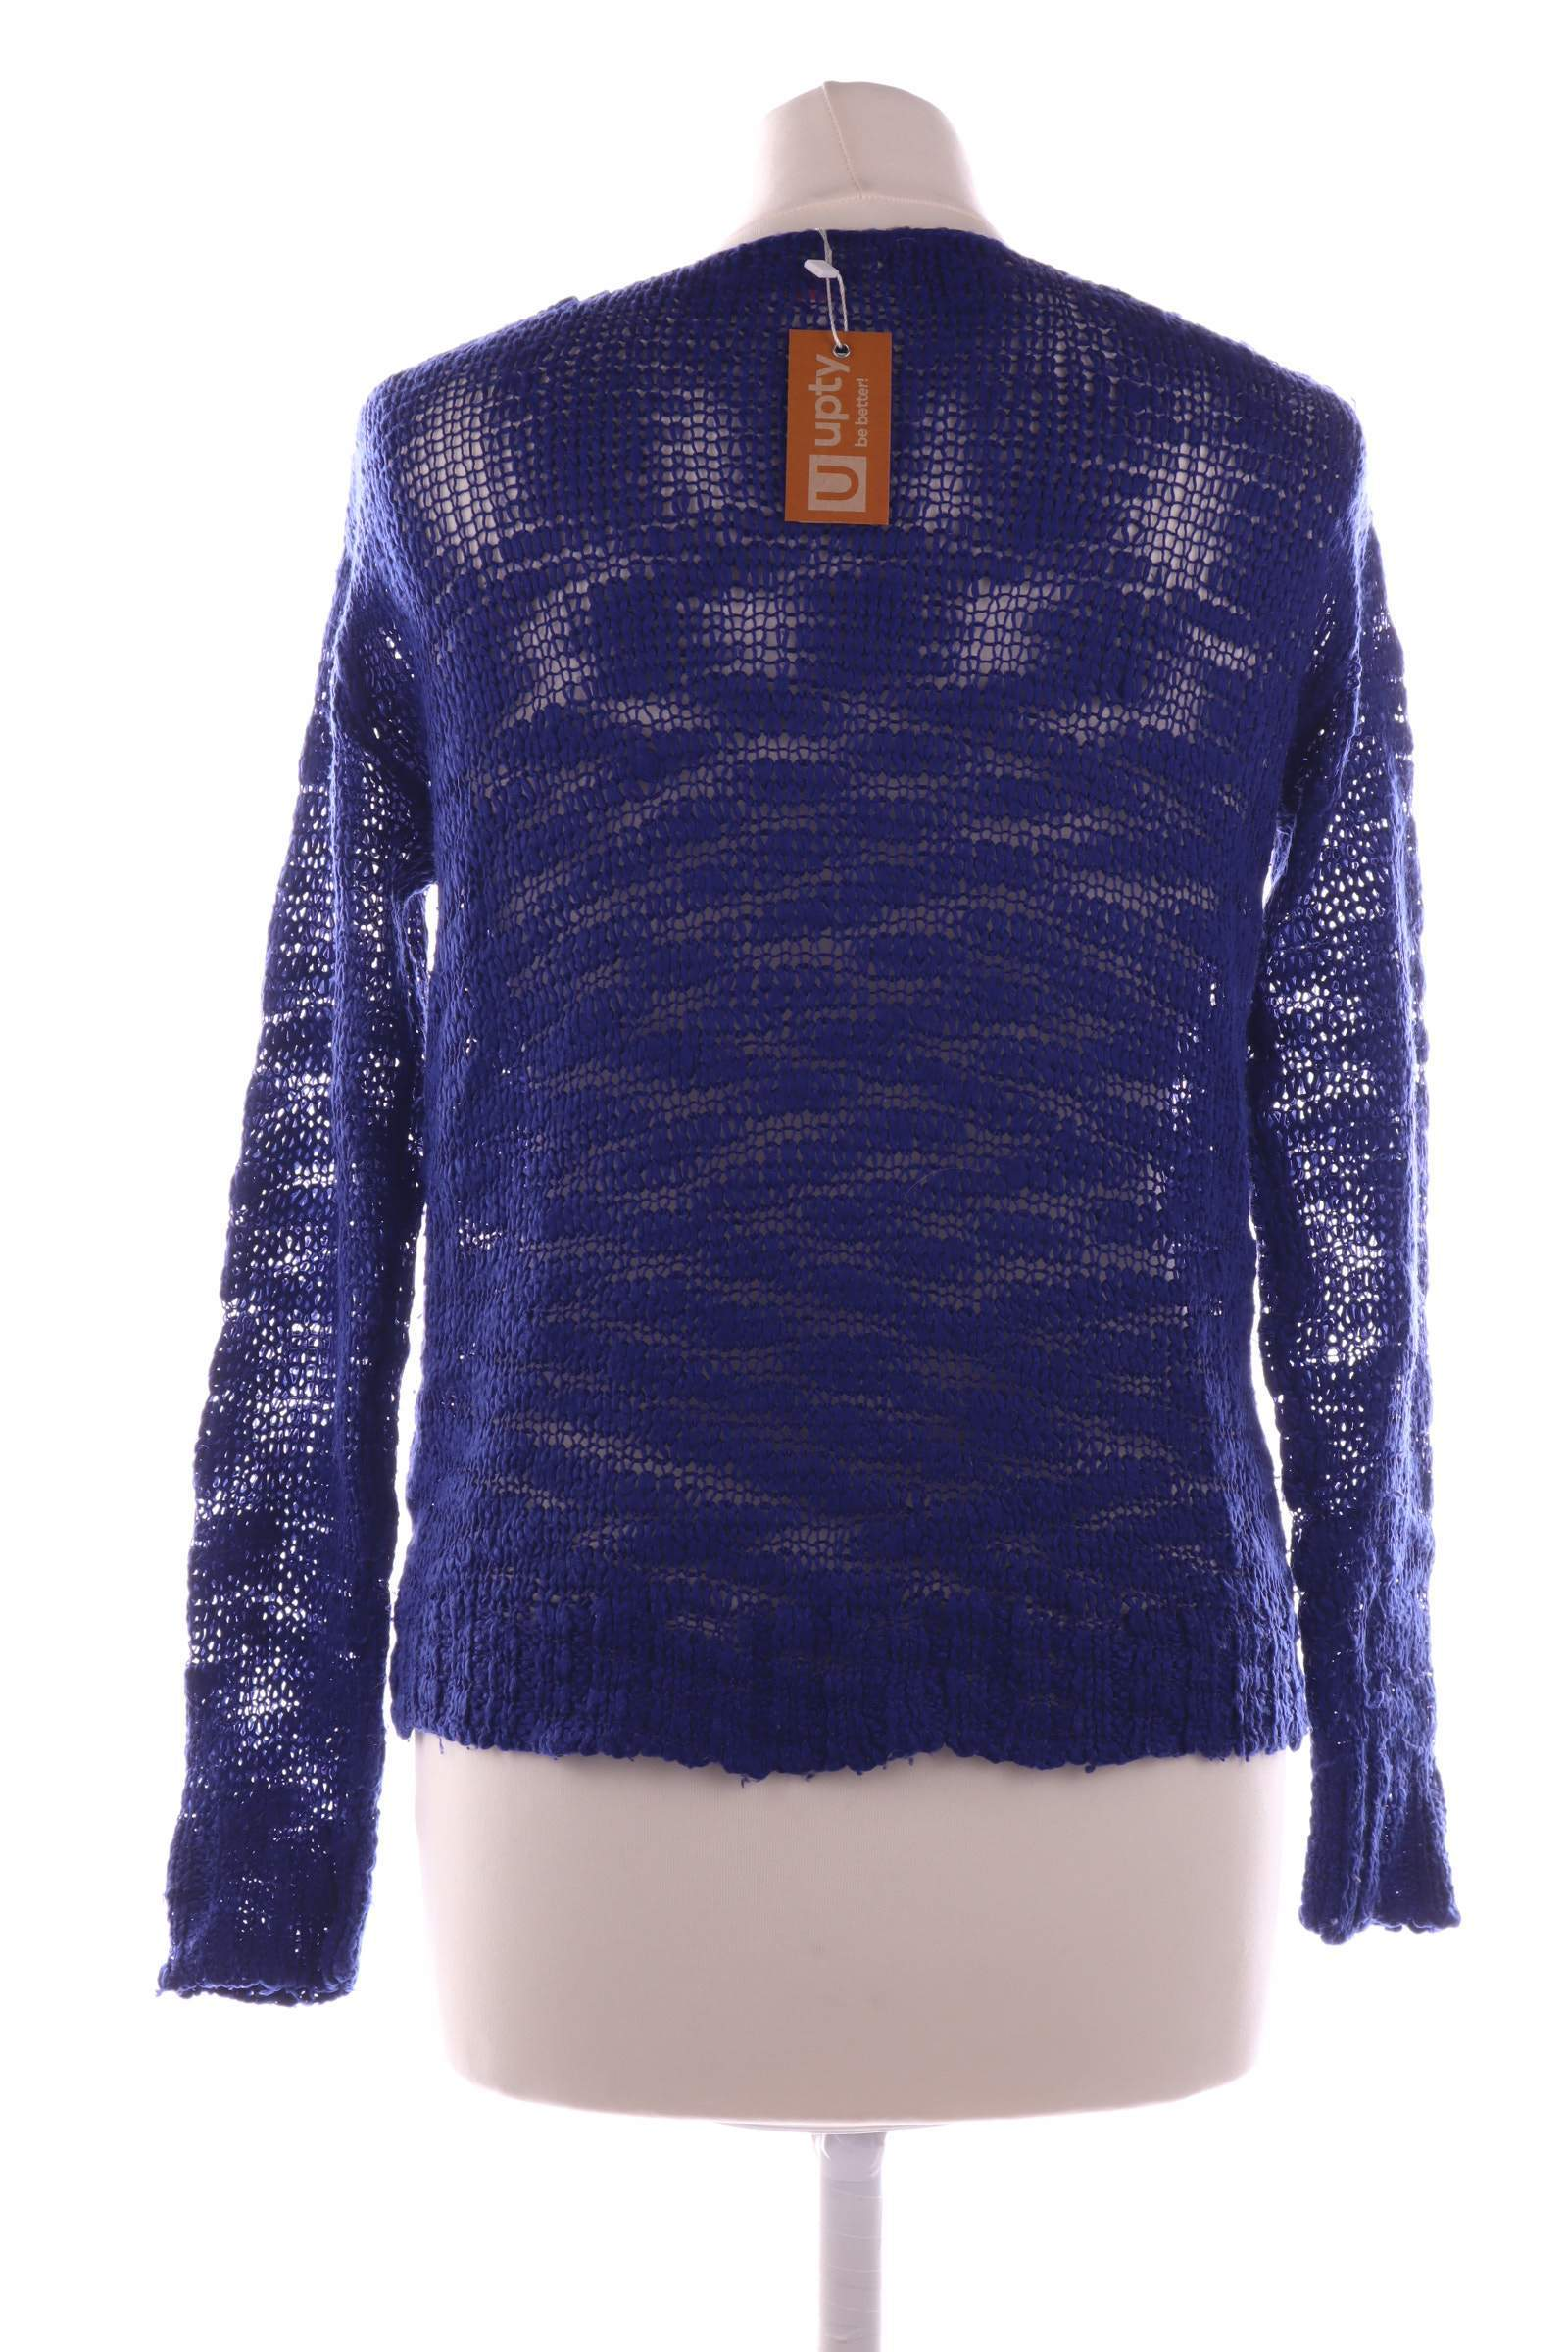 Cleillim Blue Sweater - upty.store